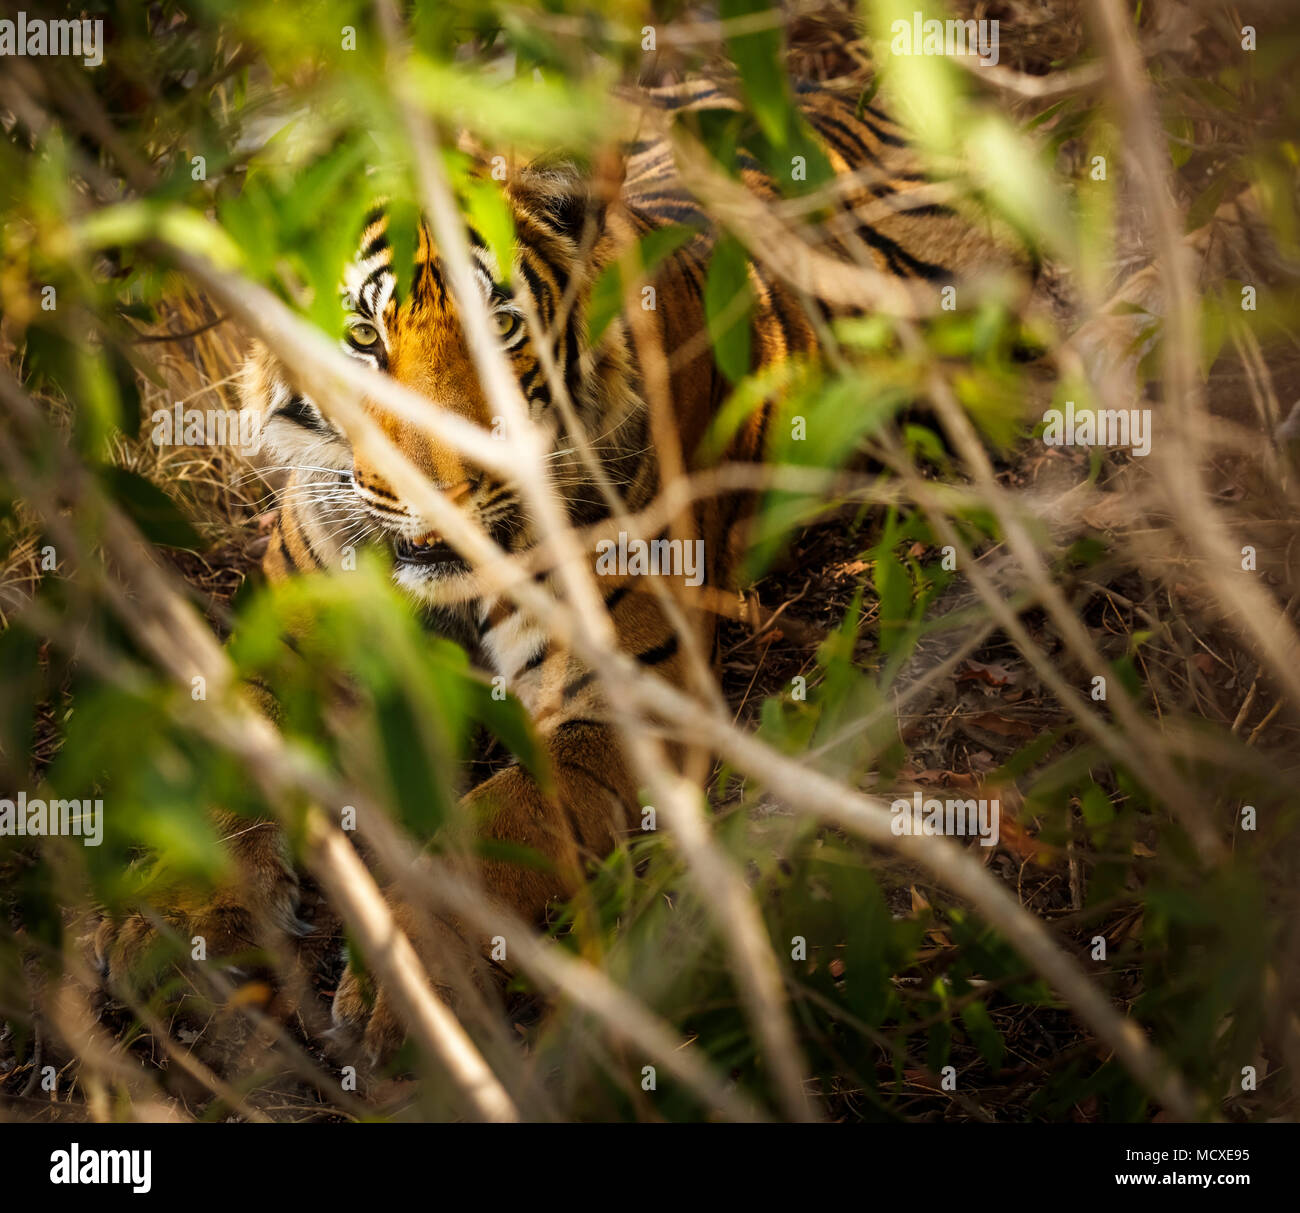 Male Bengal tiger (Panthera tigris) concealed in undergrowth, Ranthambore National Park, Rajasthan, northern India - Stock Image